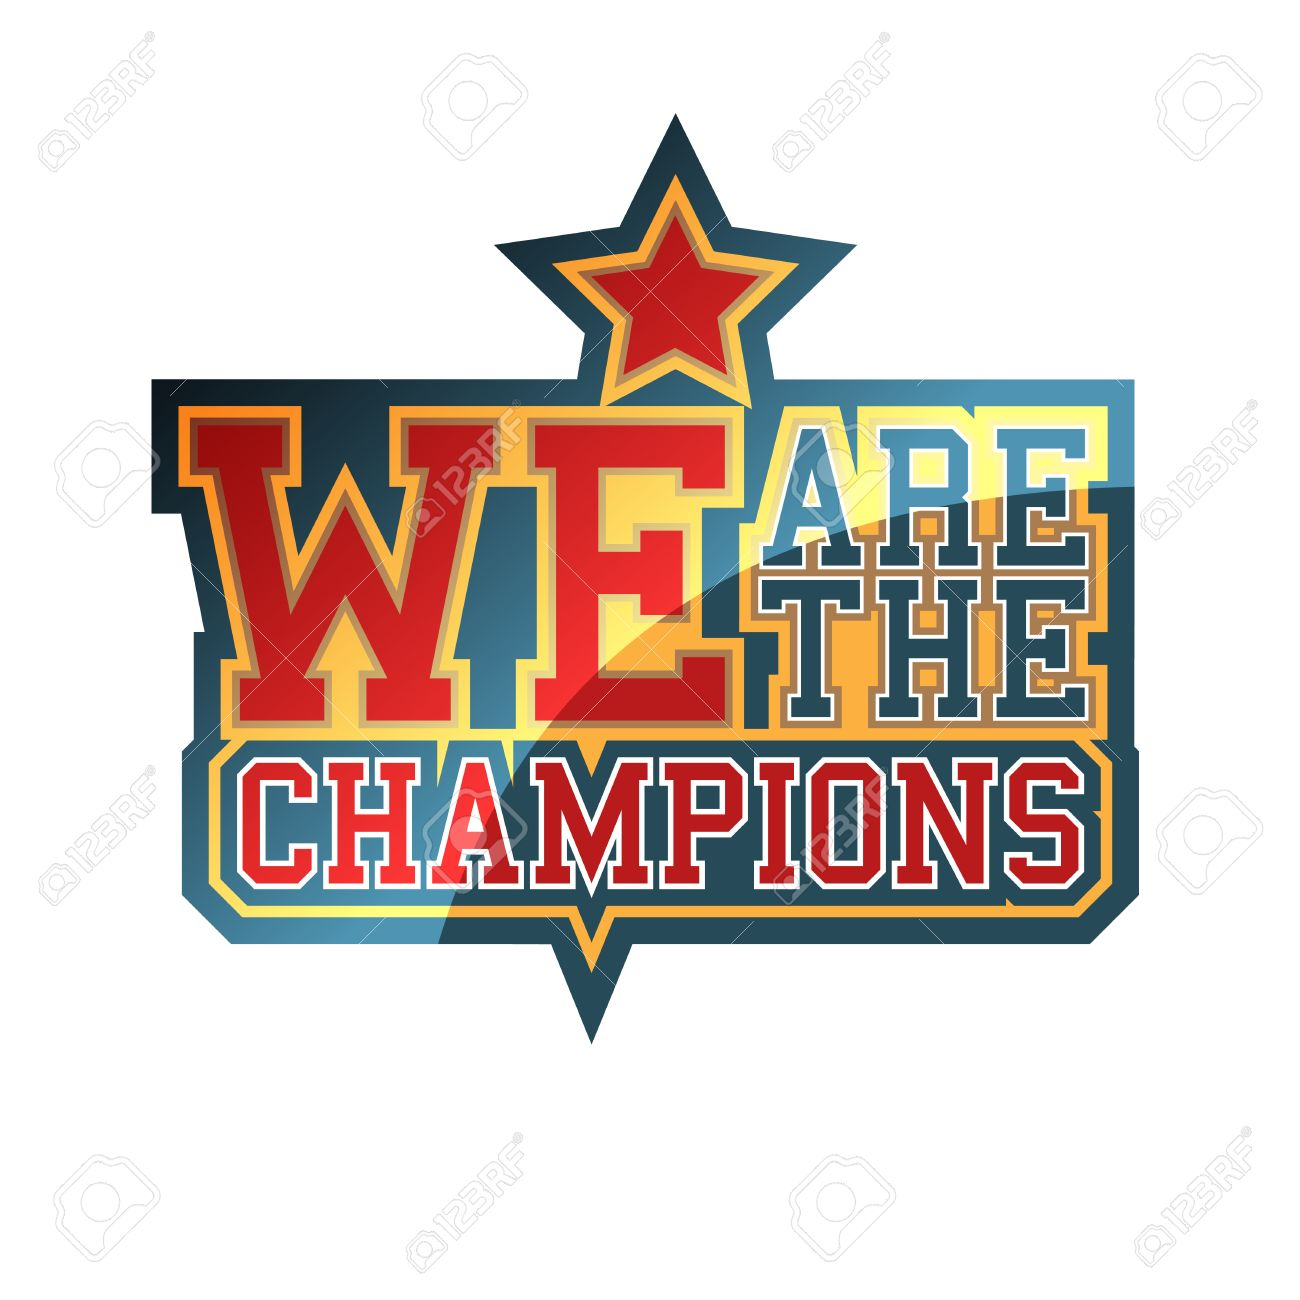 We are the champions sign royalty free cliparts vectors and stock vector we are the champions sign altavistaventures Image collections